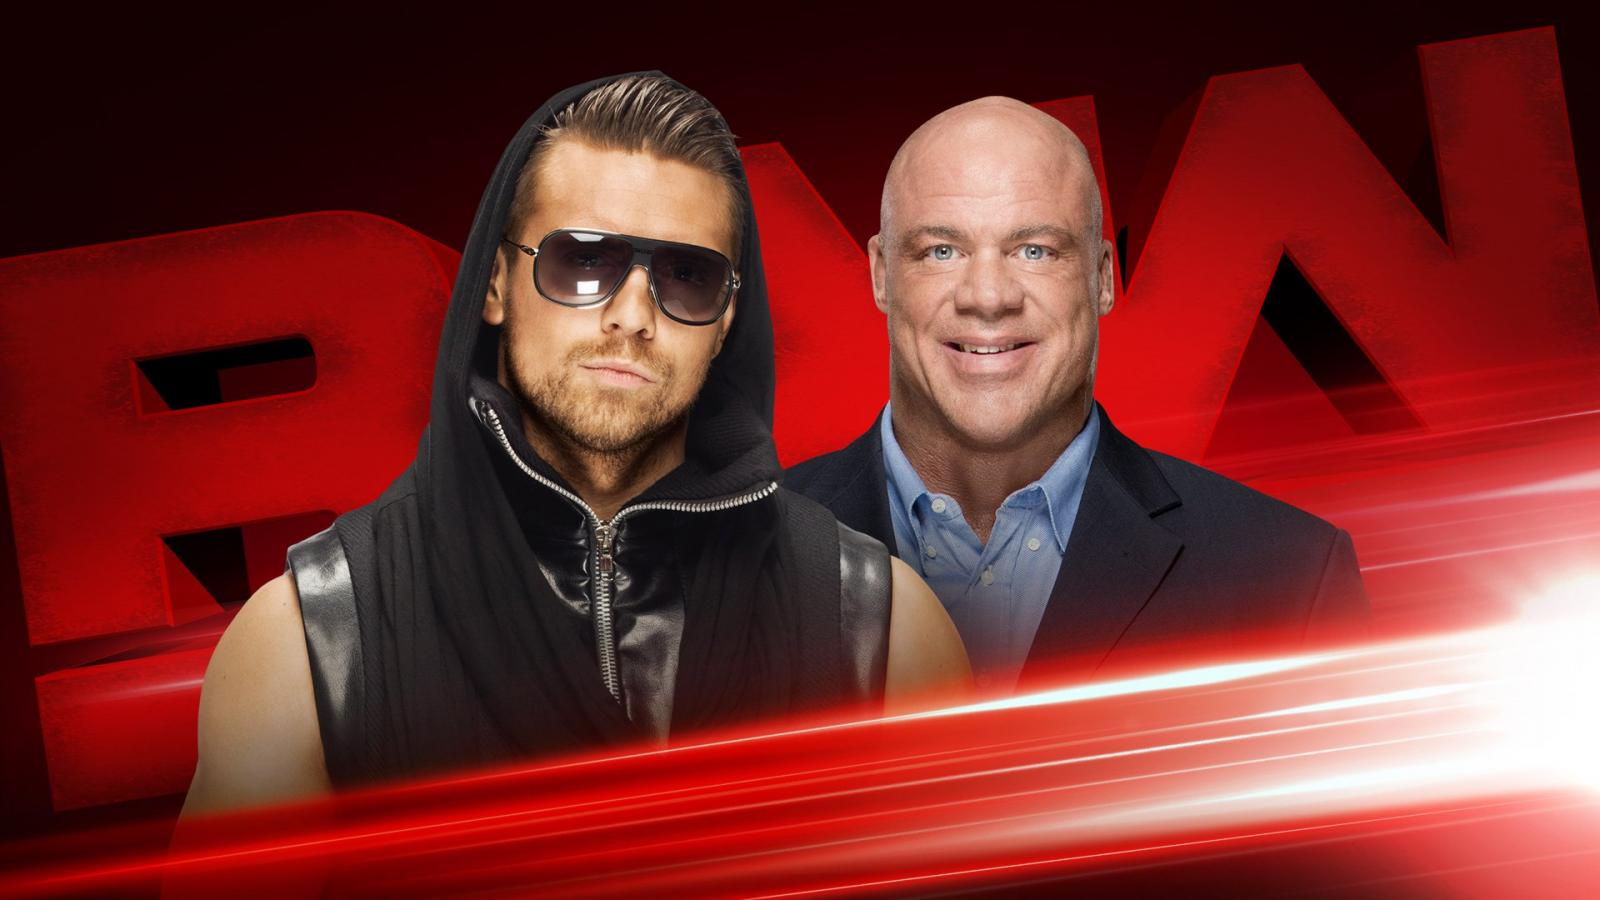 SPOILERS: Raw's UK Taping- Championship Changes And A Main Roster Debut!